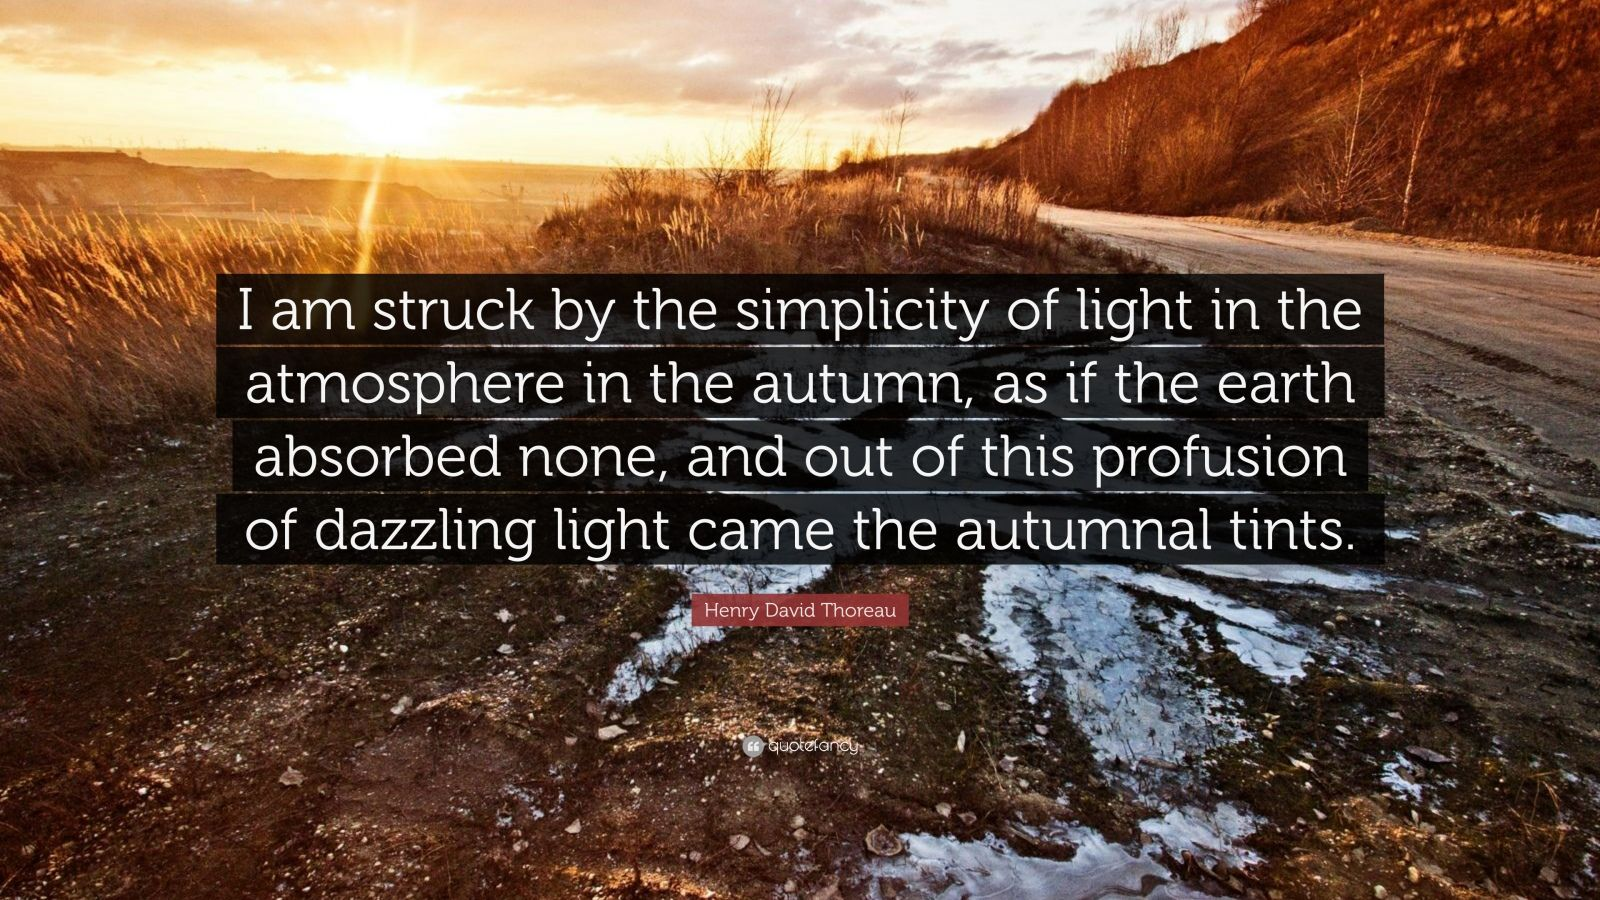 """Henry David Thoreau Quote: """"I am struck by the simplicity of light in the atmosphere in the autumn, as if the earth absorbed none, and out of this profusion of dazzling light came the autumnal tints."""""""